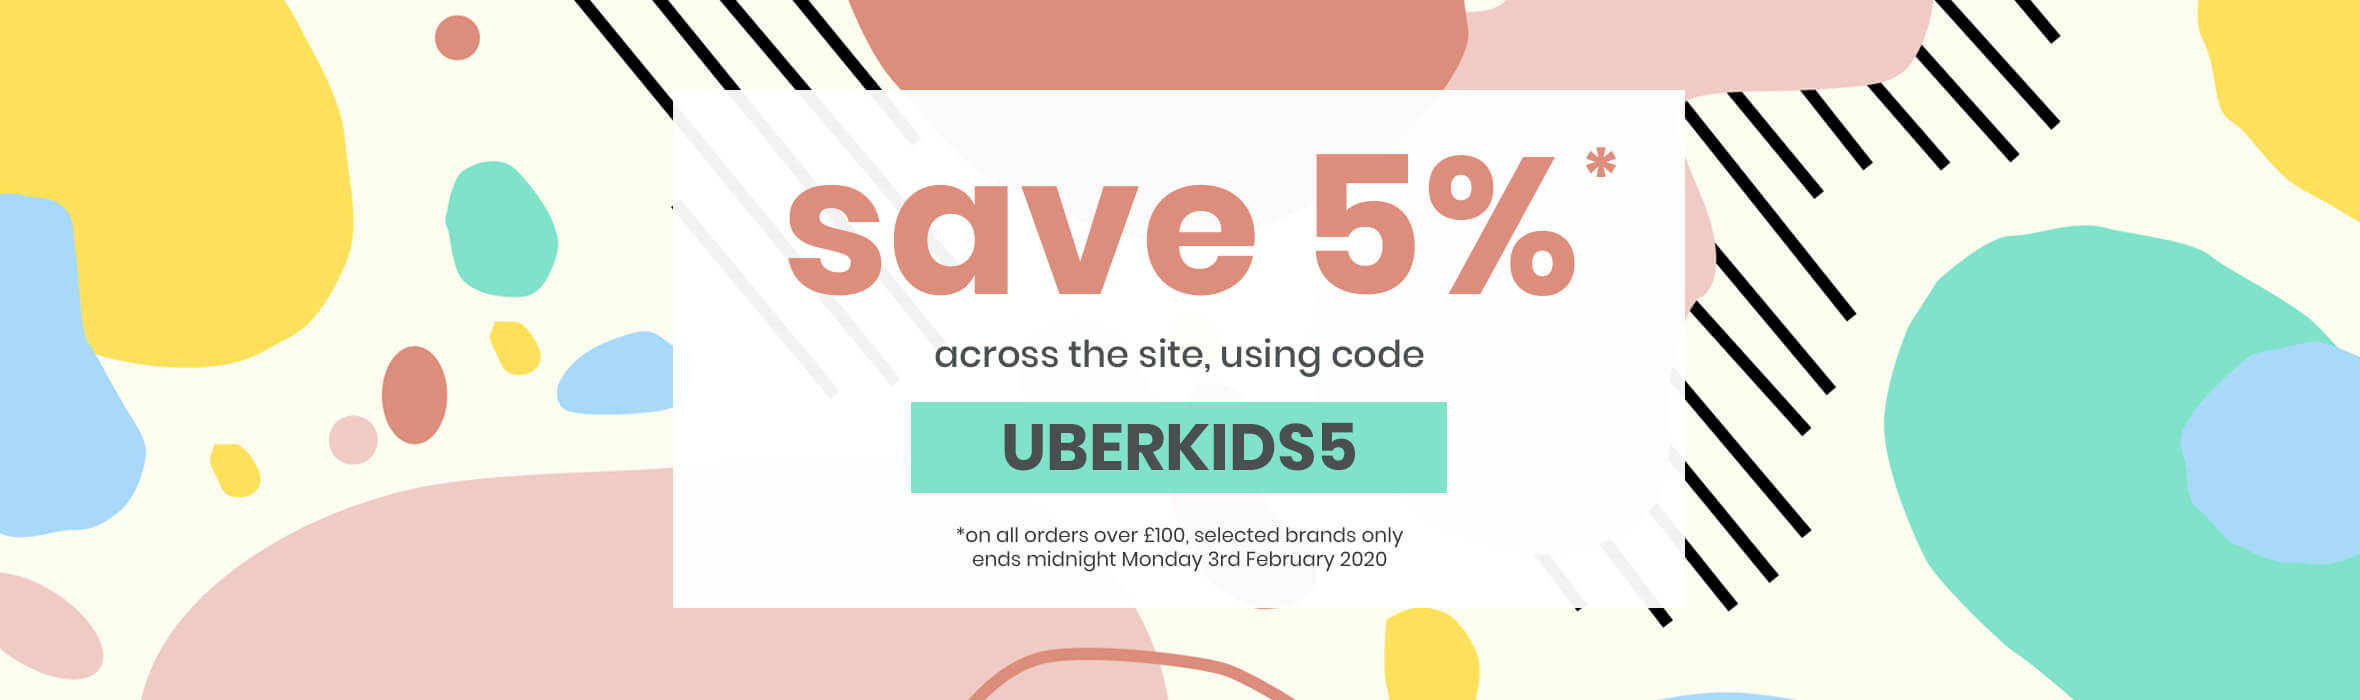 Save 5% with Code UBERKIDS5